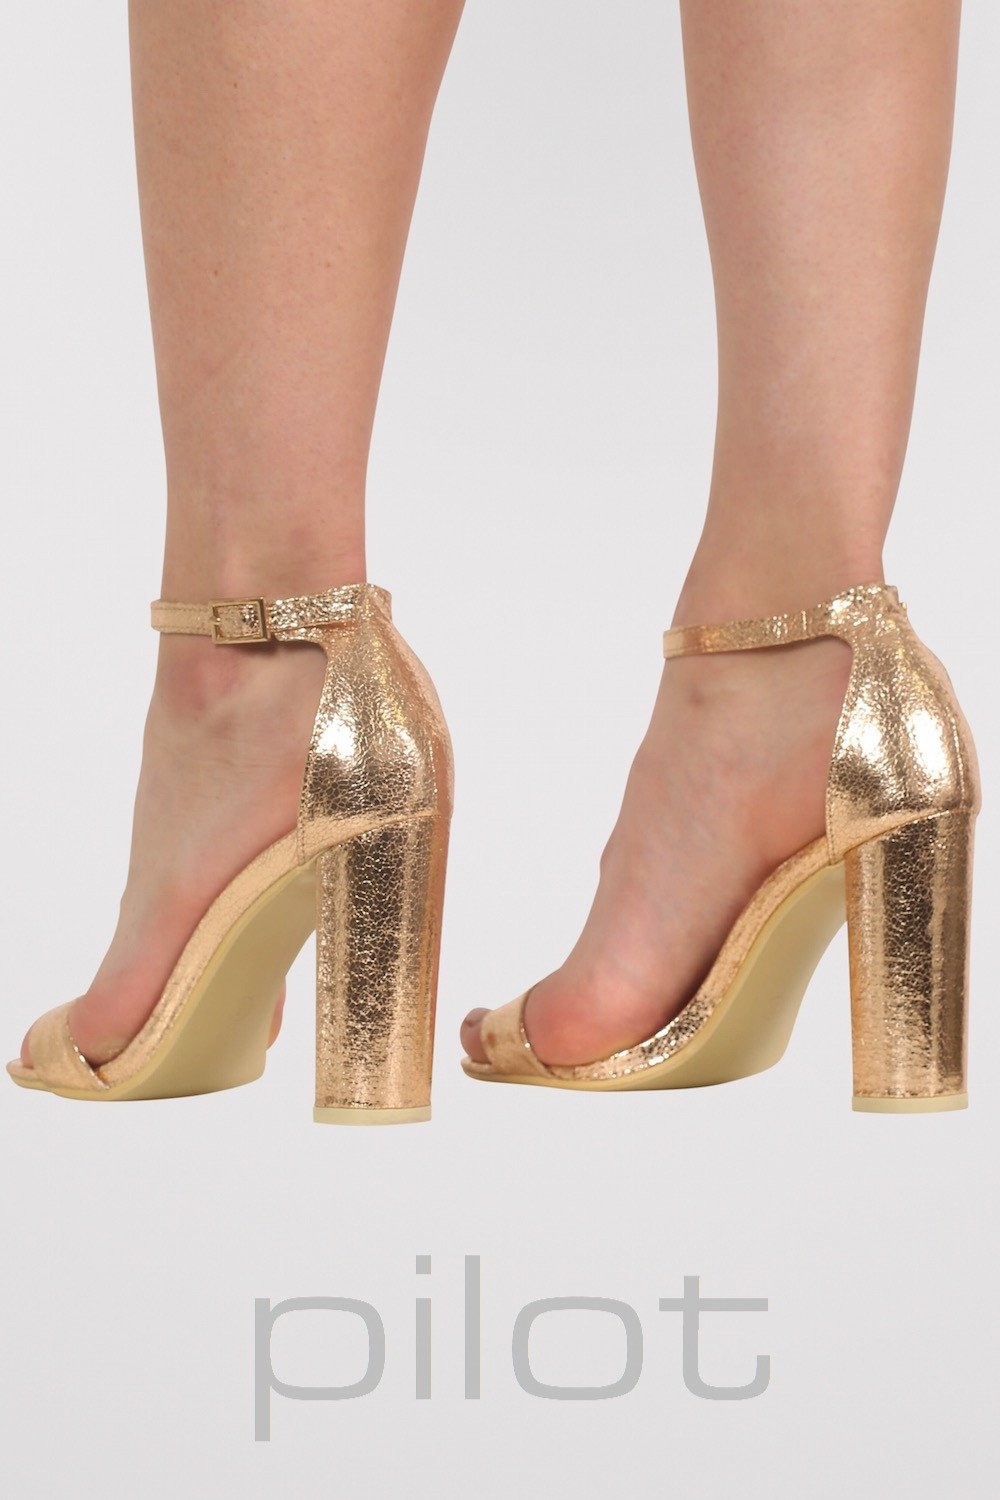 9ceeaf4eb1e3 Block Heel Barely There Strappy Sandals in Rose Gold MODEL BACK 2